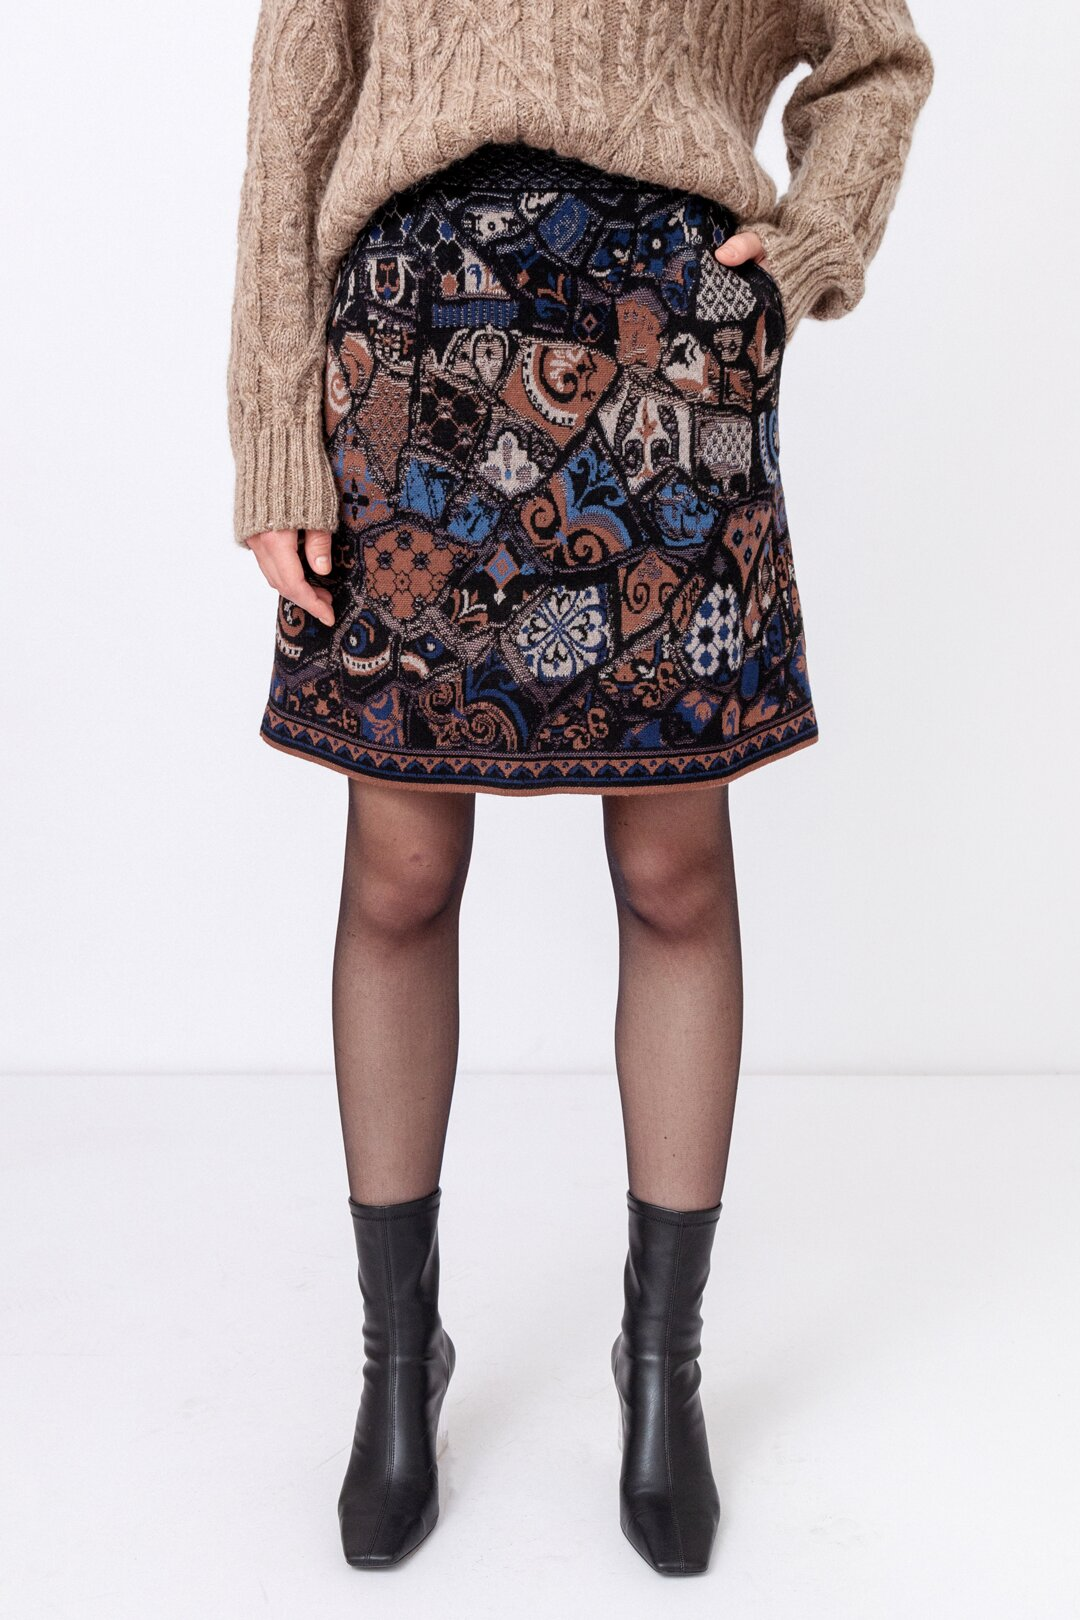 outfit-7c8a1145